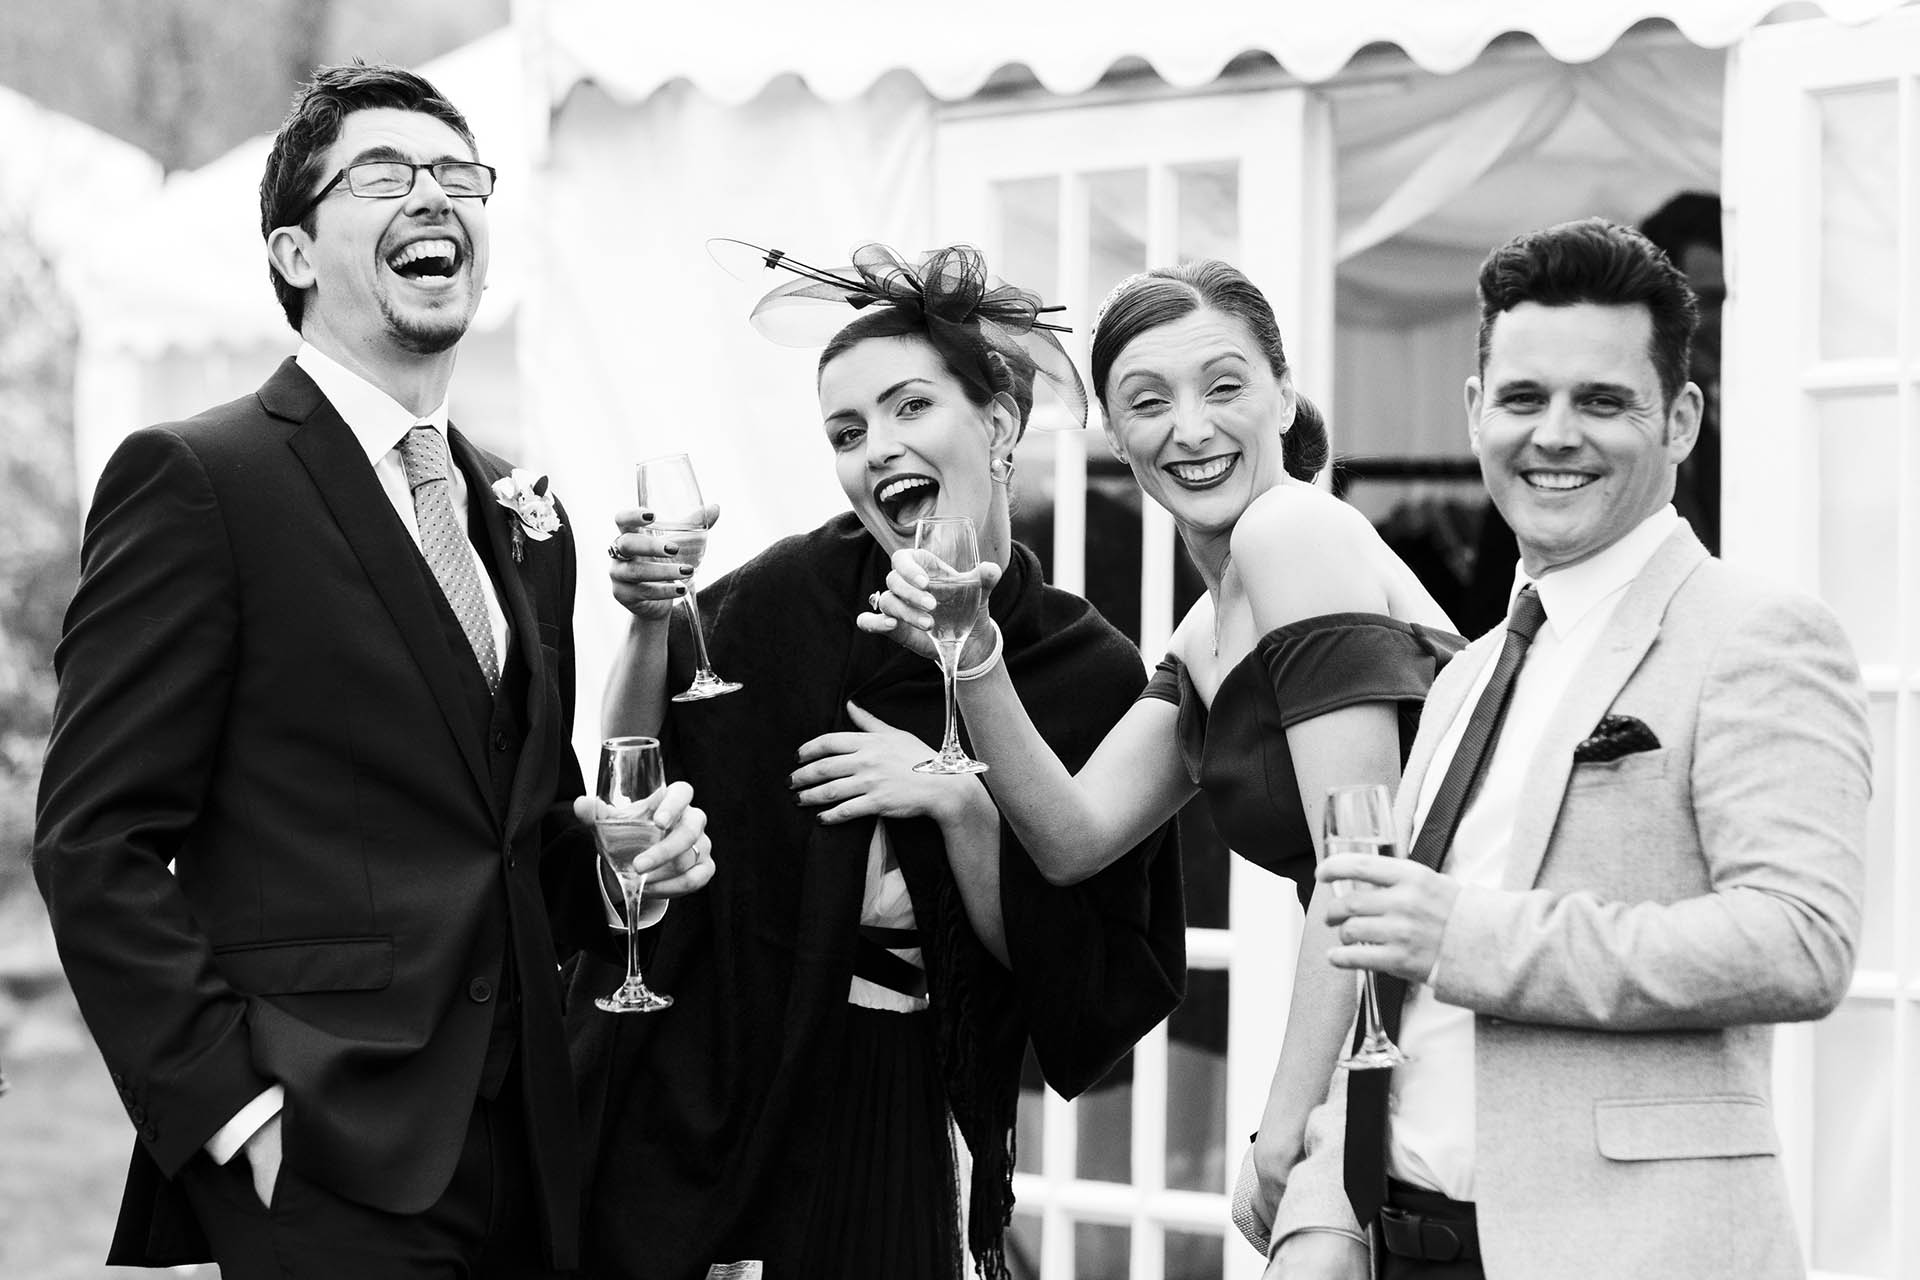 Black and white reportage wedding photograph by Eyeshine Photography